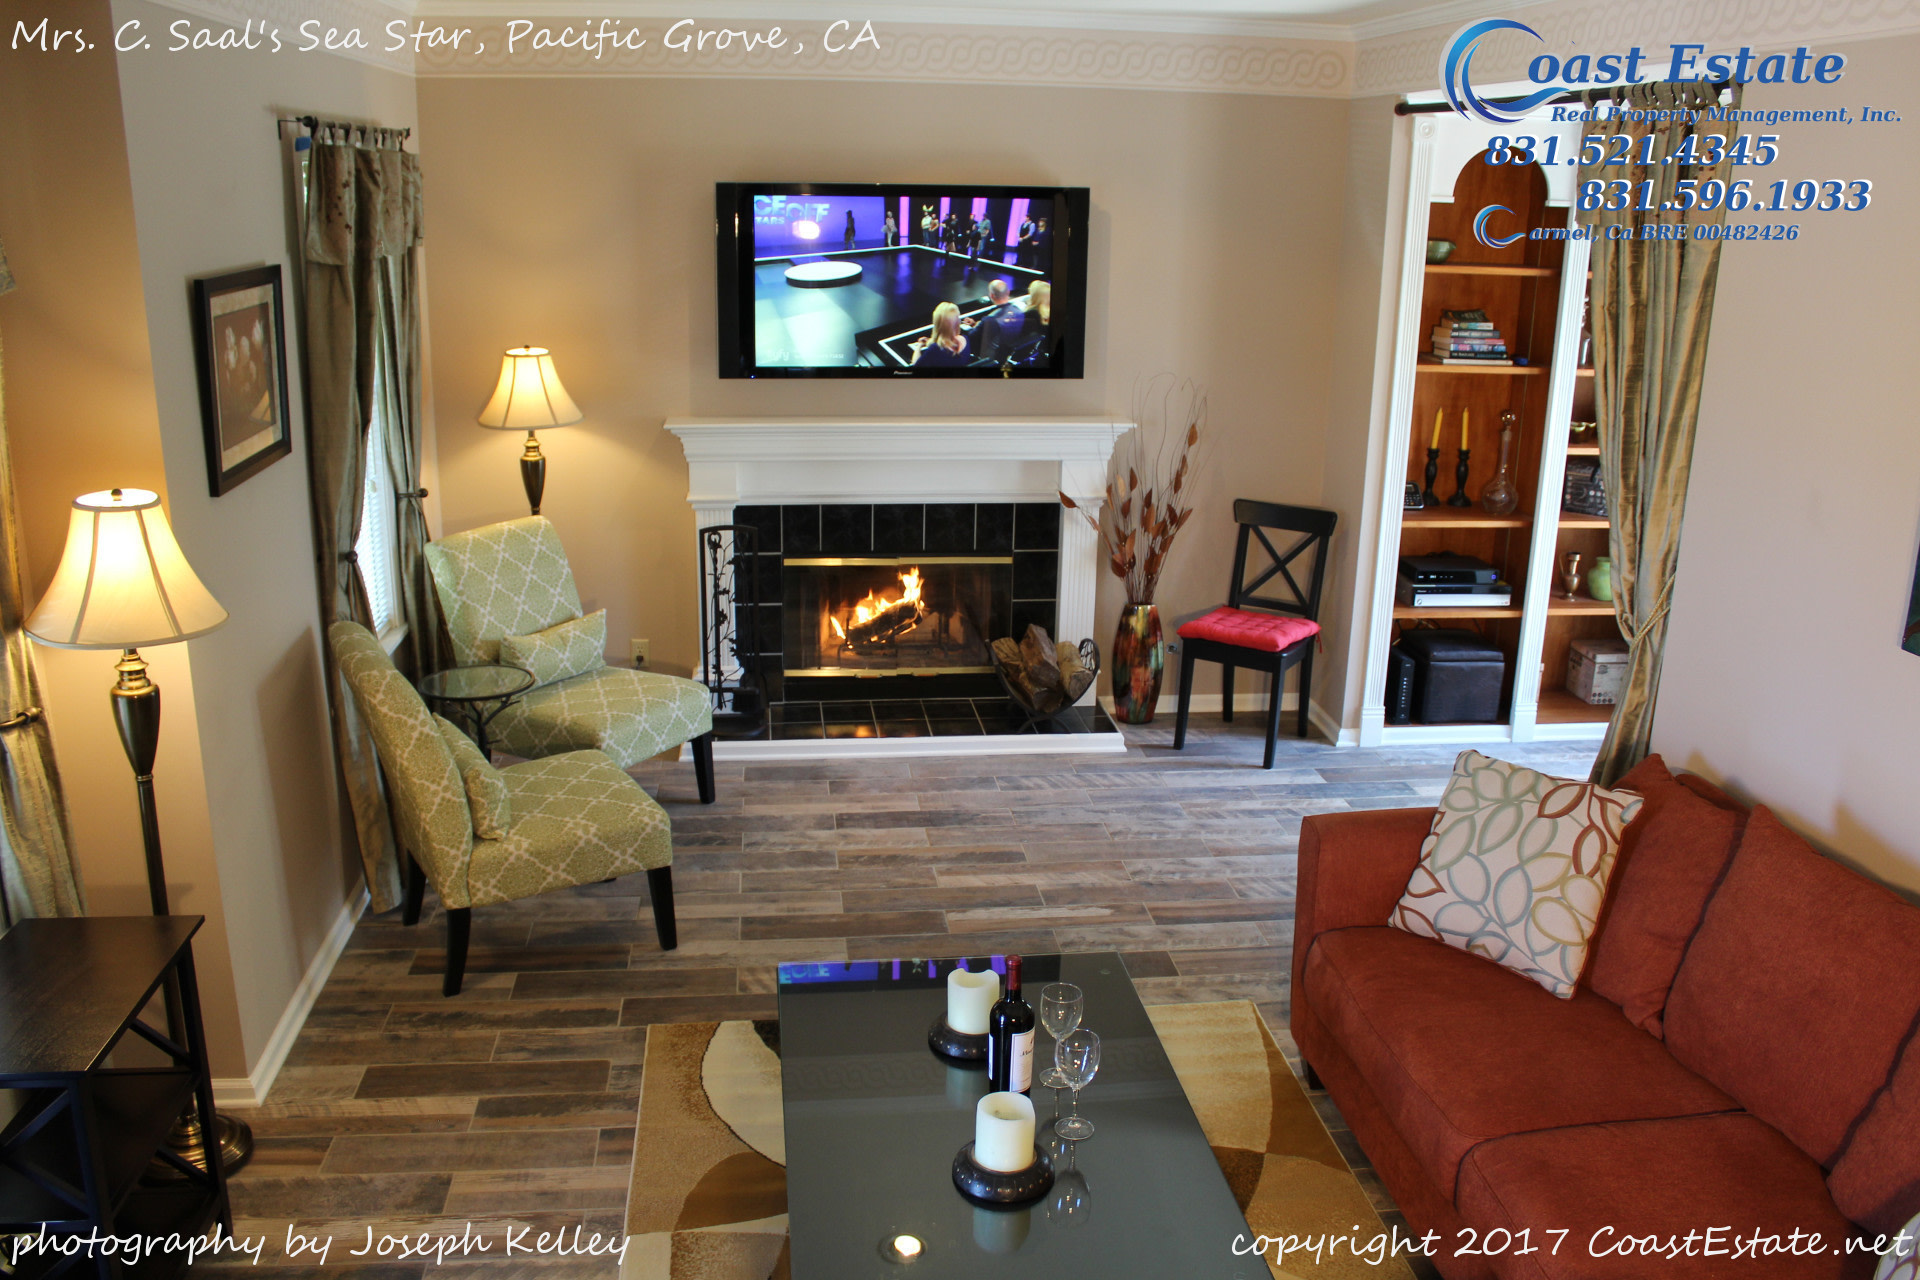 ... 20 Best Apartments In Pacific Grove Ca With Pictures ...